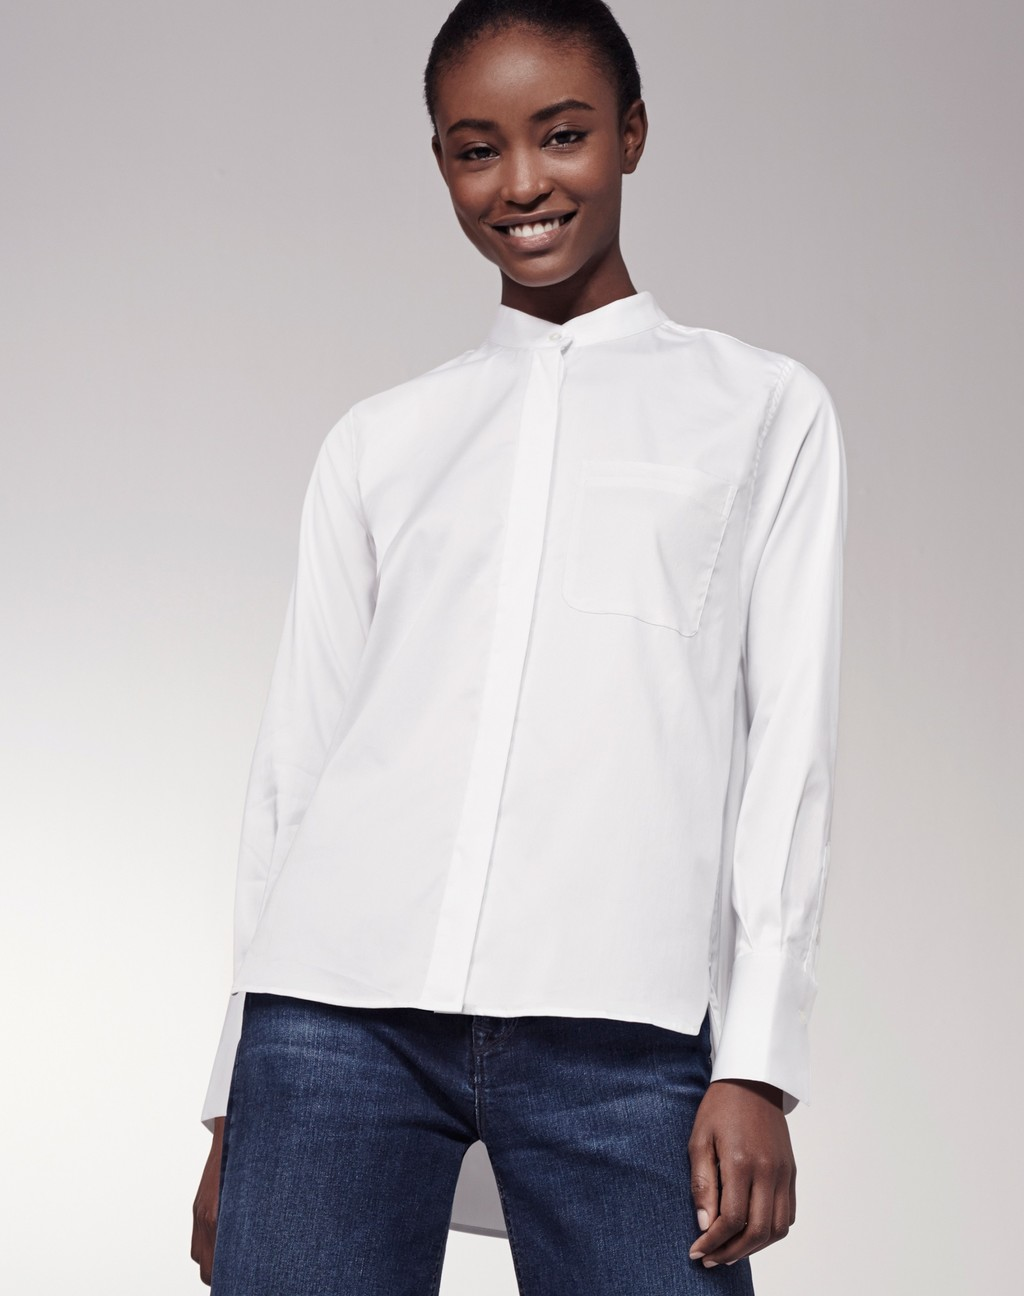 Mandarin Collar Shirt White - pattern: plain; style: shirt; predominant colour: white; occasions: work; length: standard; neckline: collarstand; fibres: cotton - 100%; fit: body skimming; sleeve length: long sleeve; sleeve style: standard; texture group: cotton feel fabrics; pattern type: fabric; season: s/s 2016